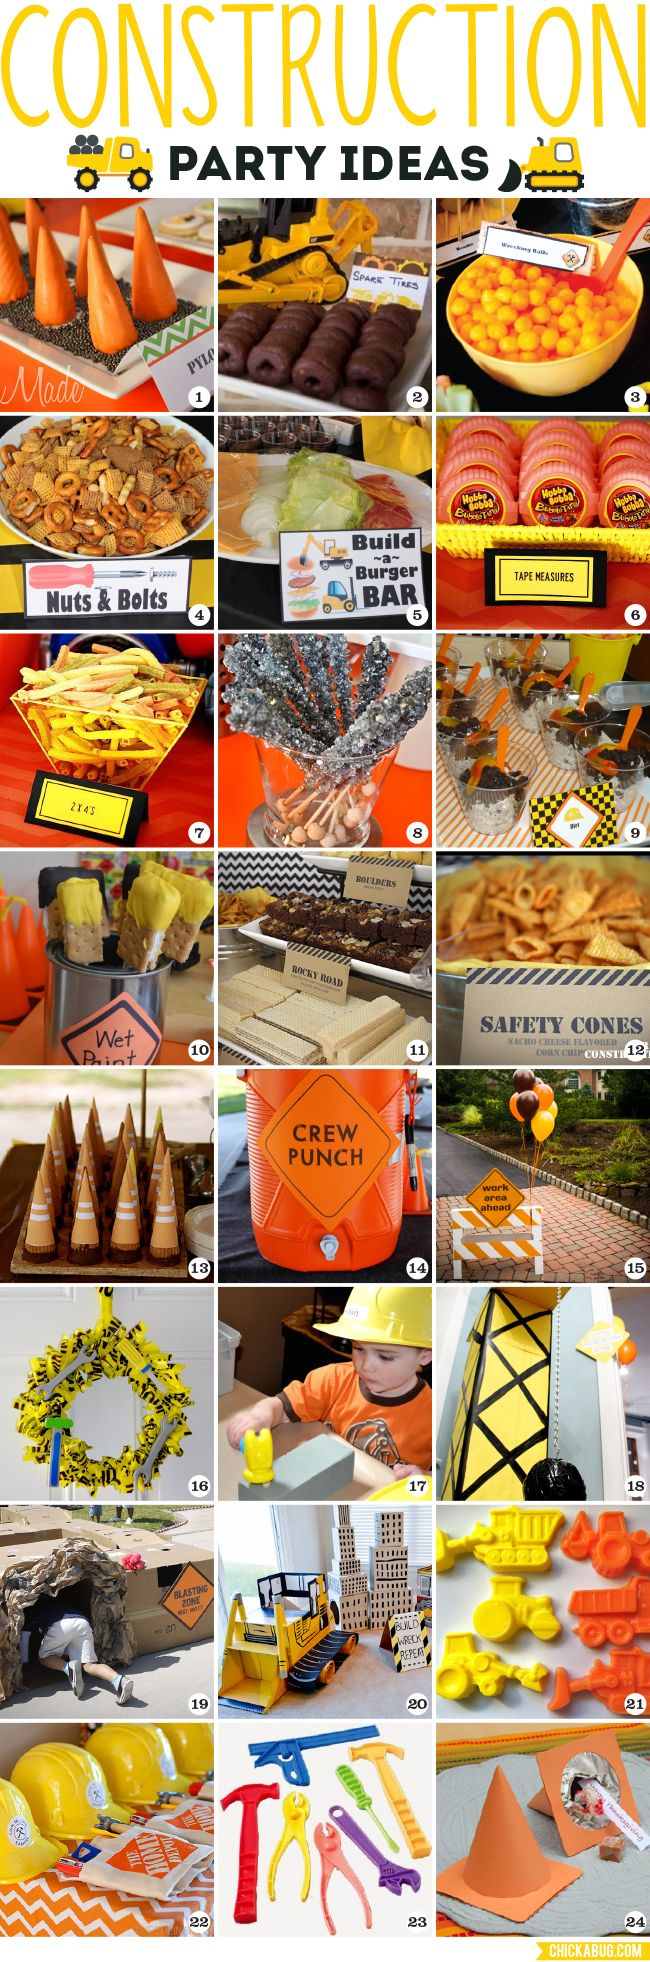 Construction party ideas inspirations